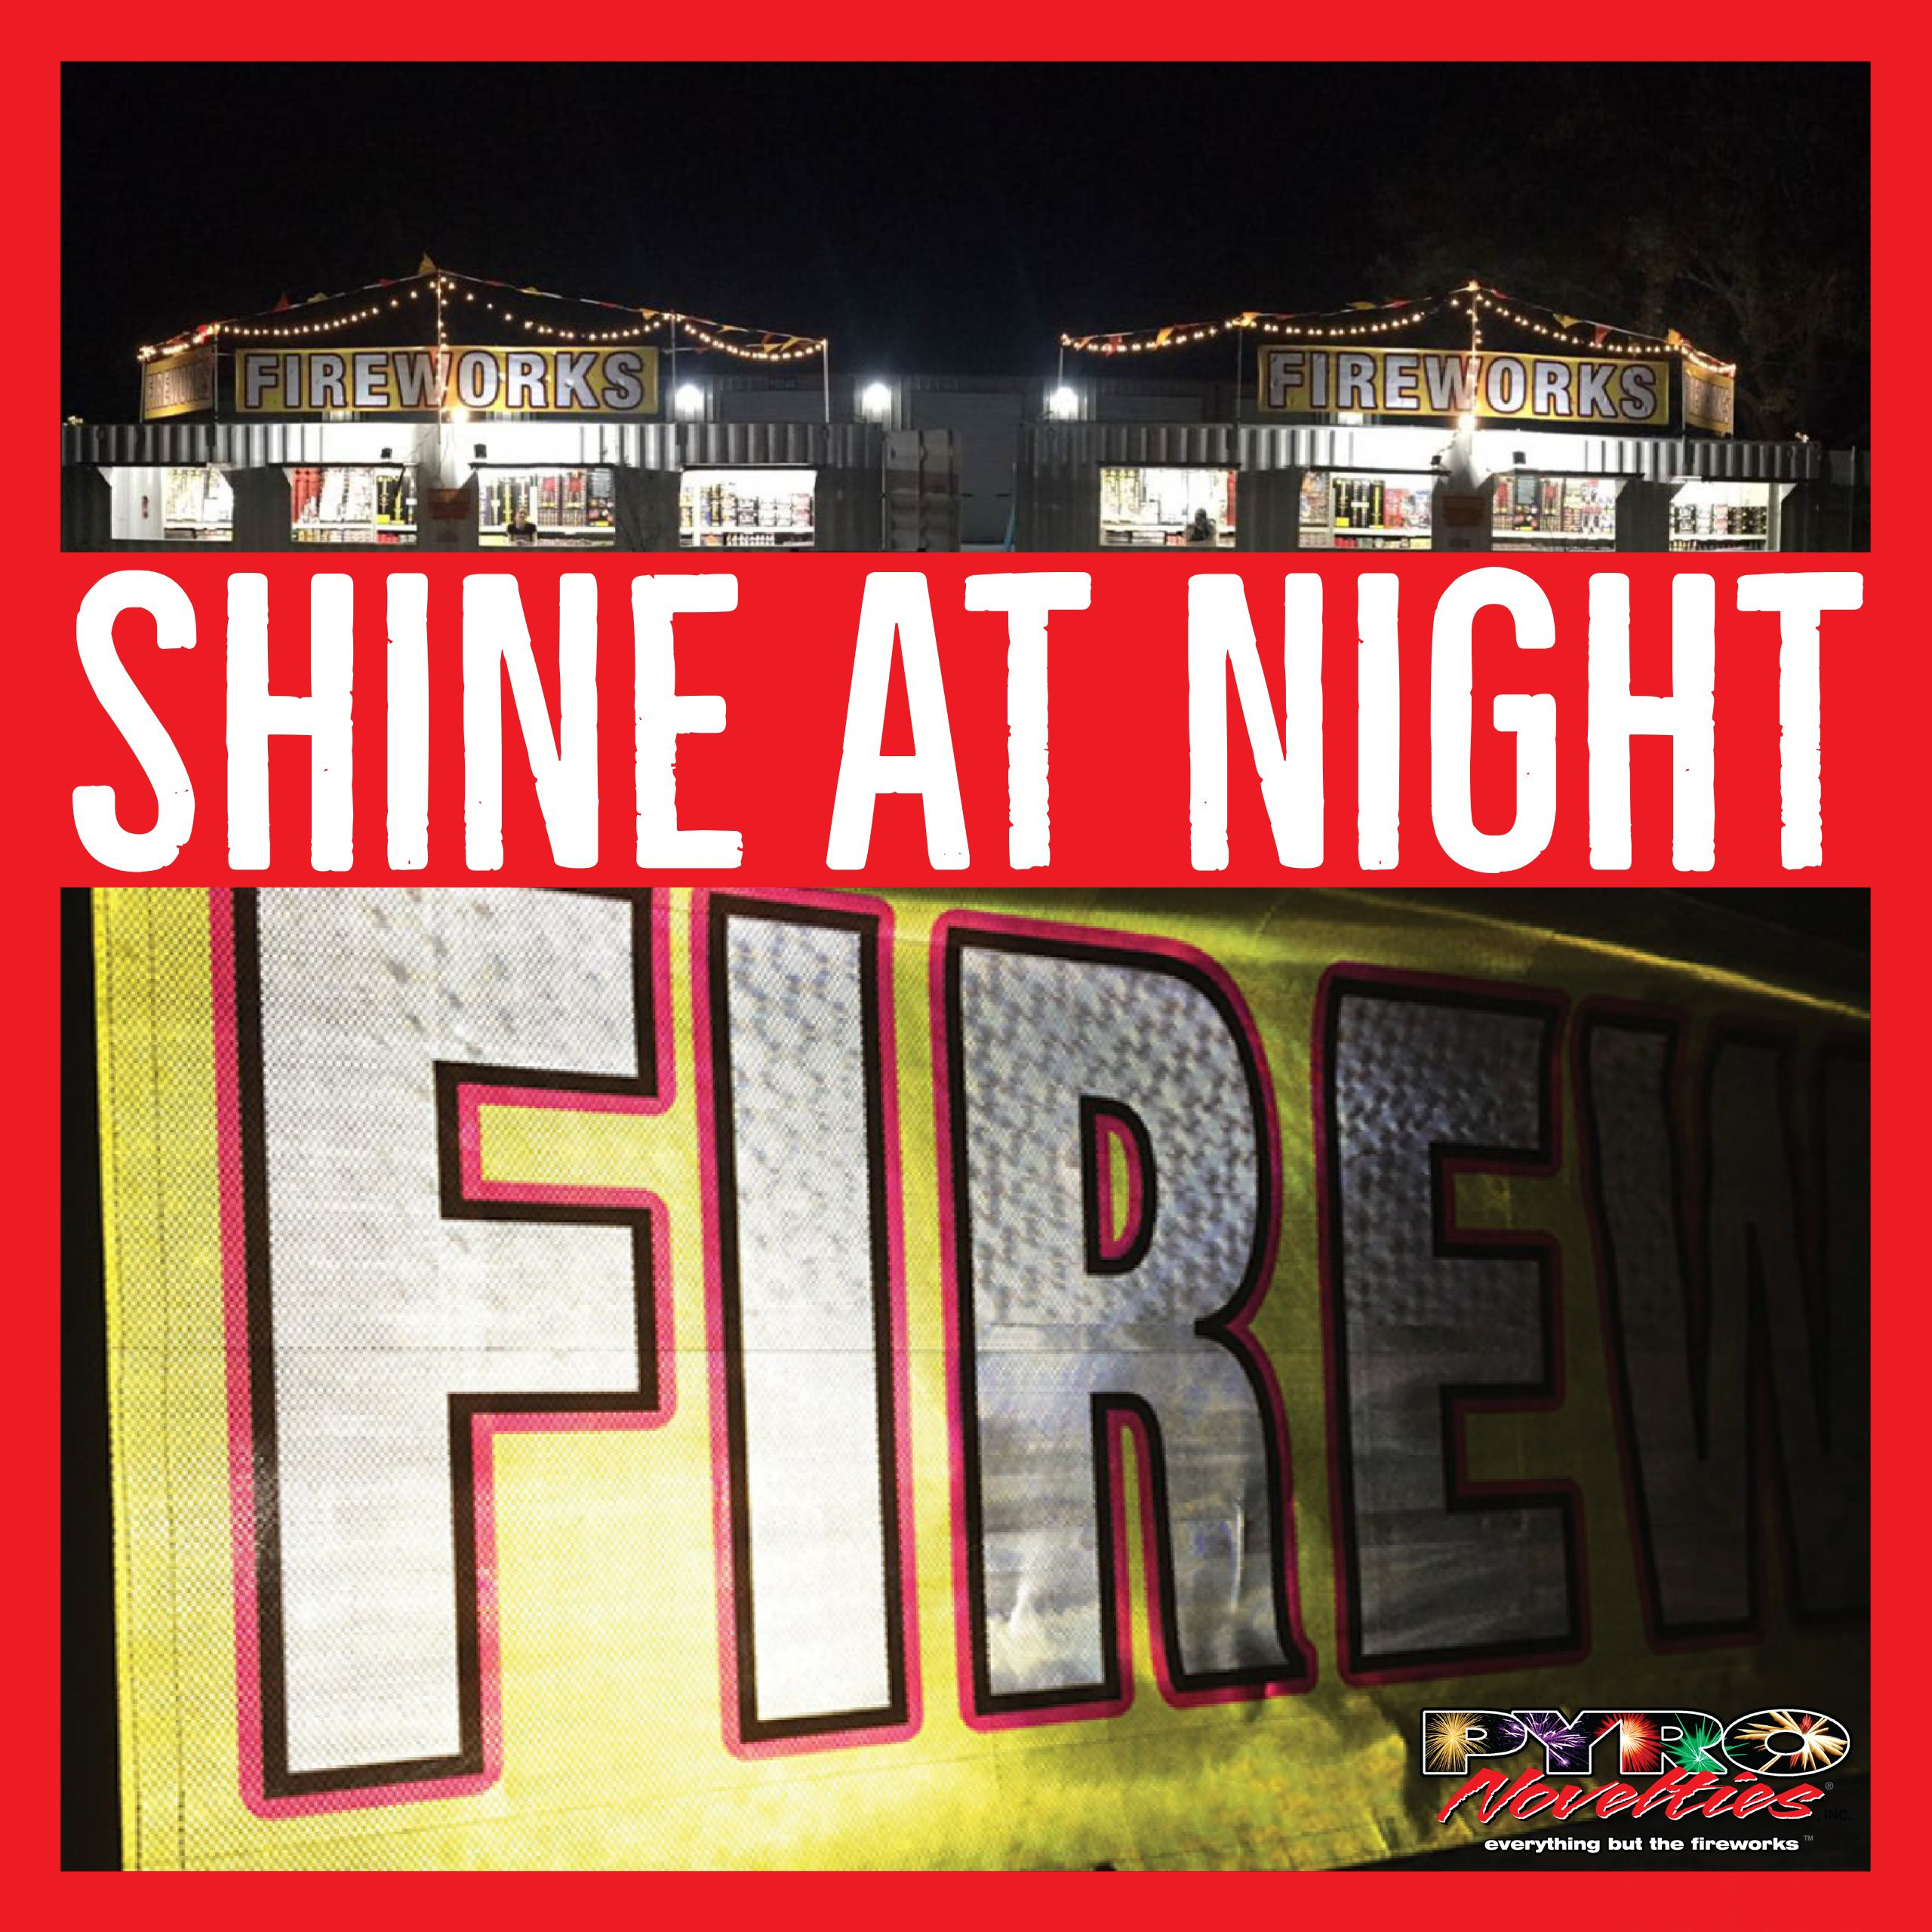 Shine At Night With Our Exclusive 3 X 10 Fireworks Reflective Vinyl Banner 3 X 10 Fireworks Banner Digitally Printed In F Vinyl Banners Fireworks Banner